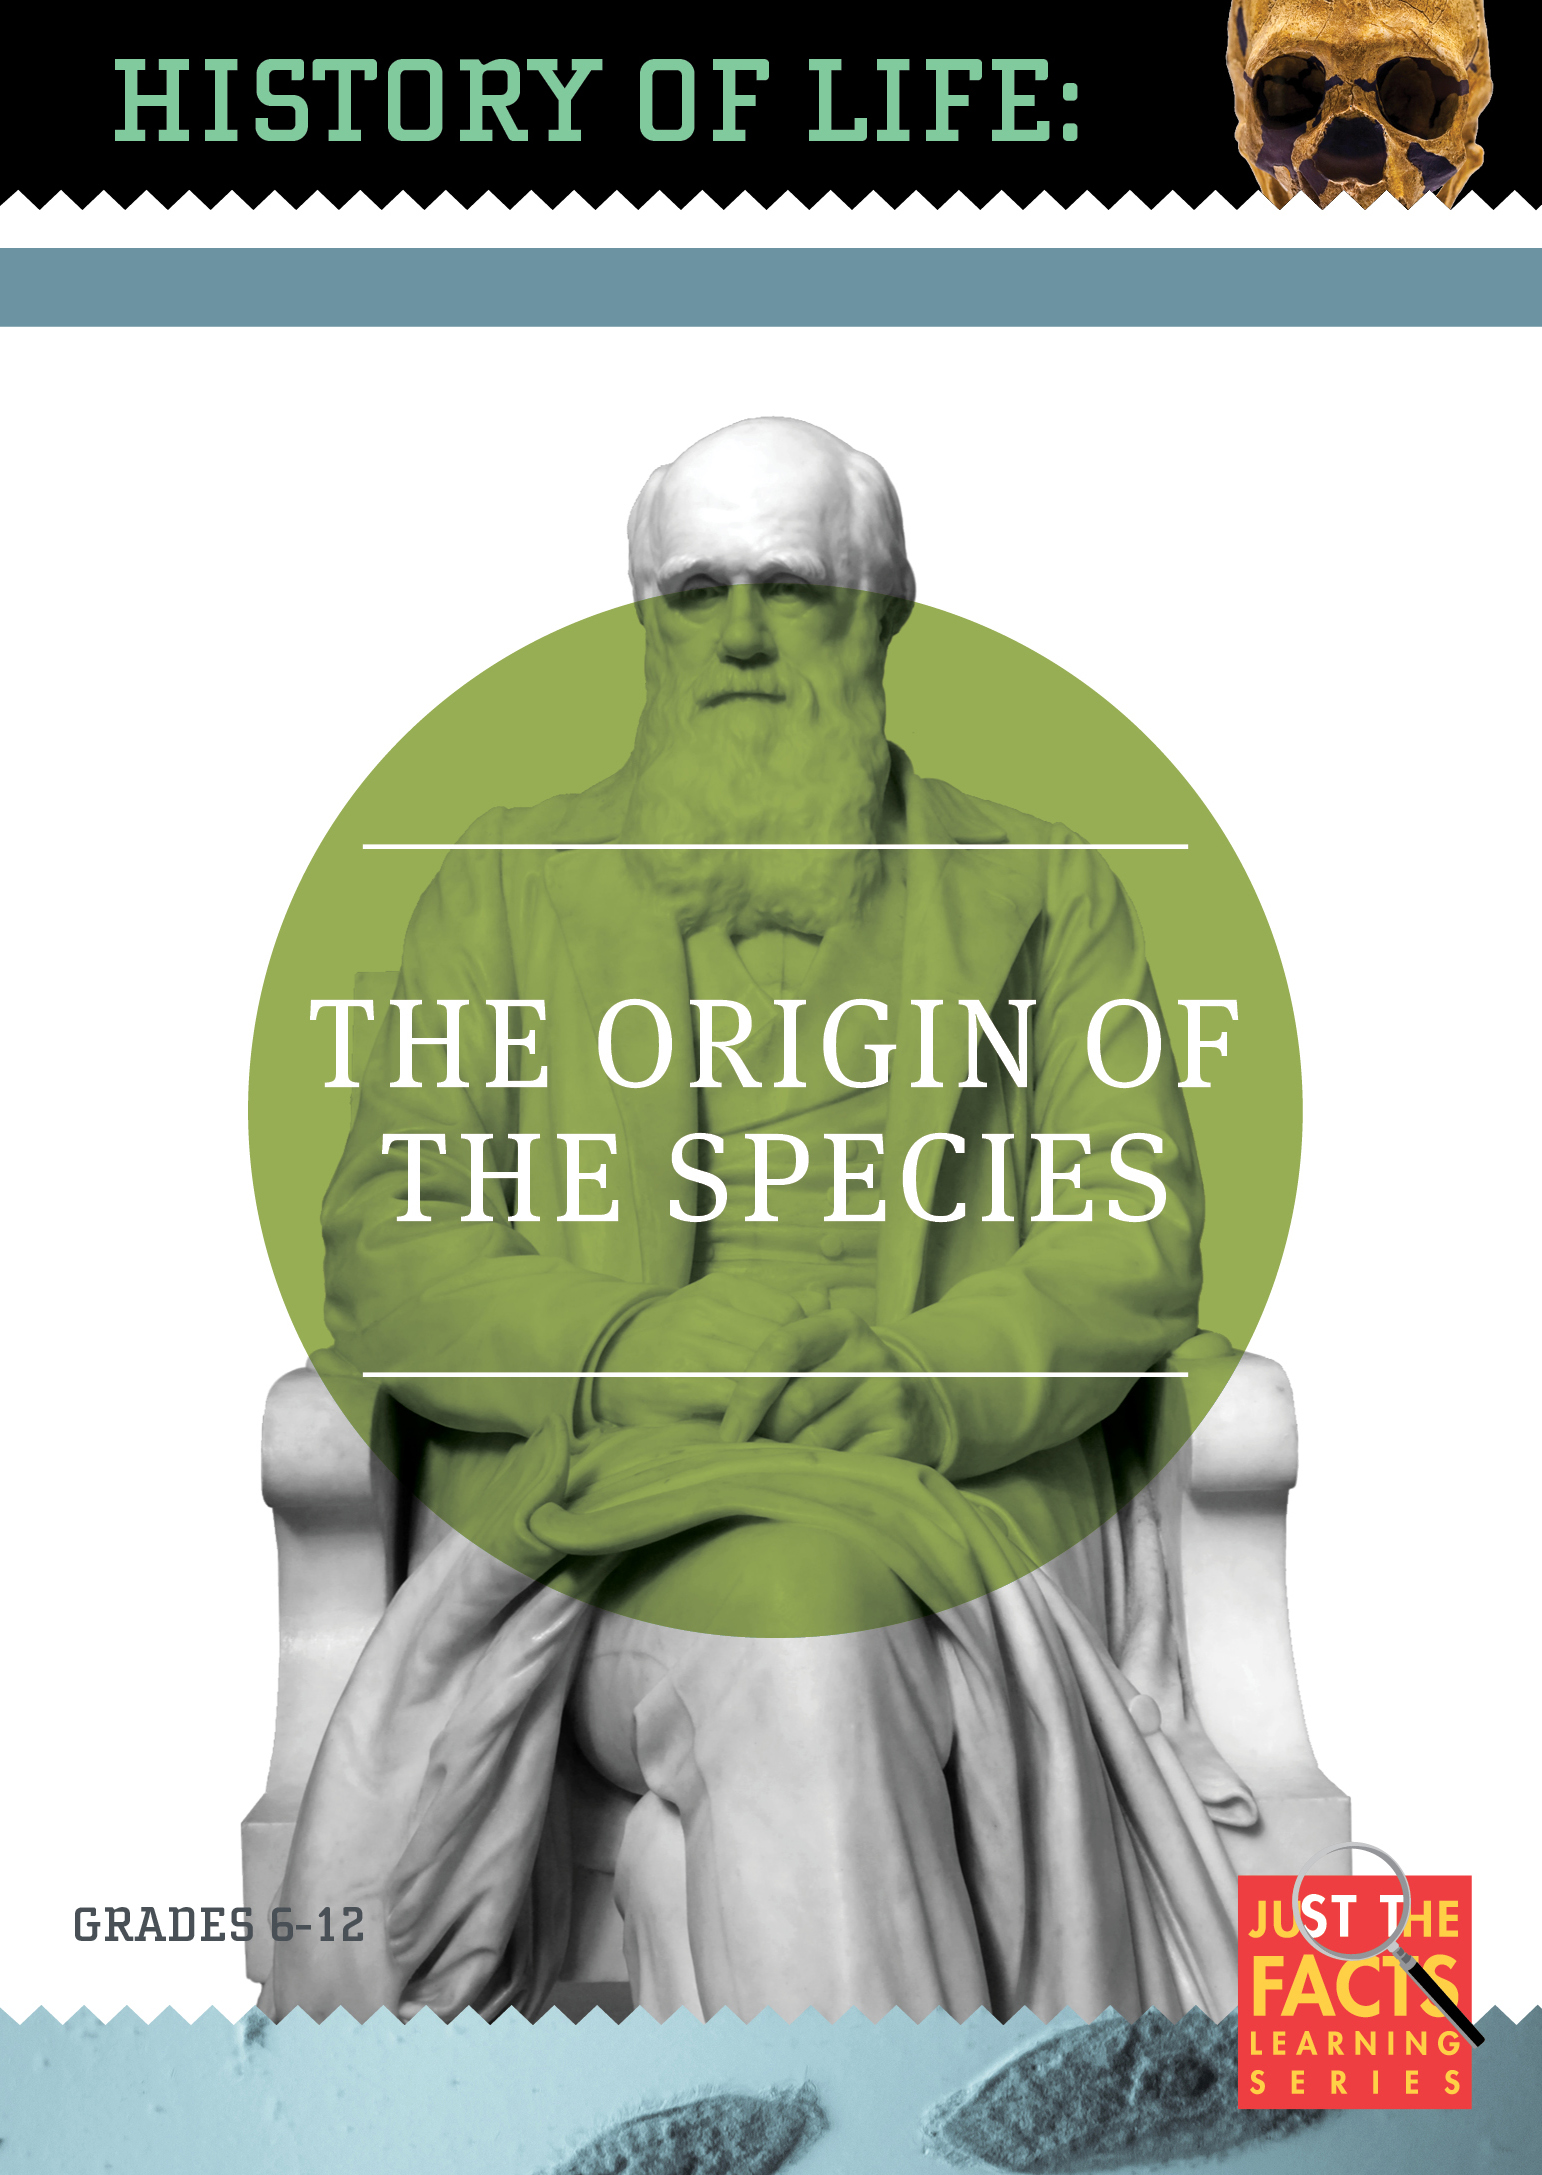 History of Life: The Origin of the Species